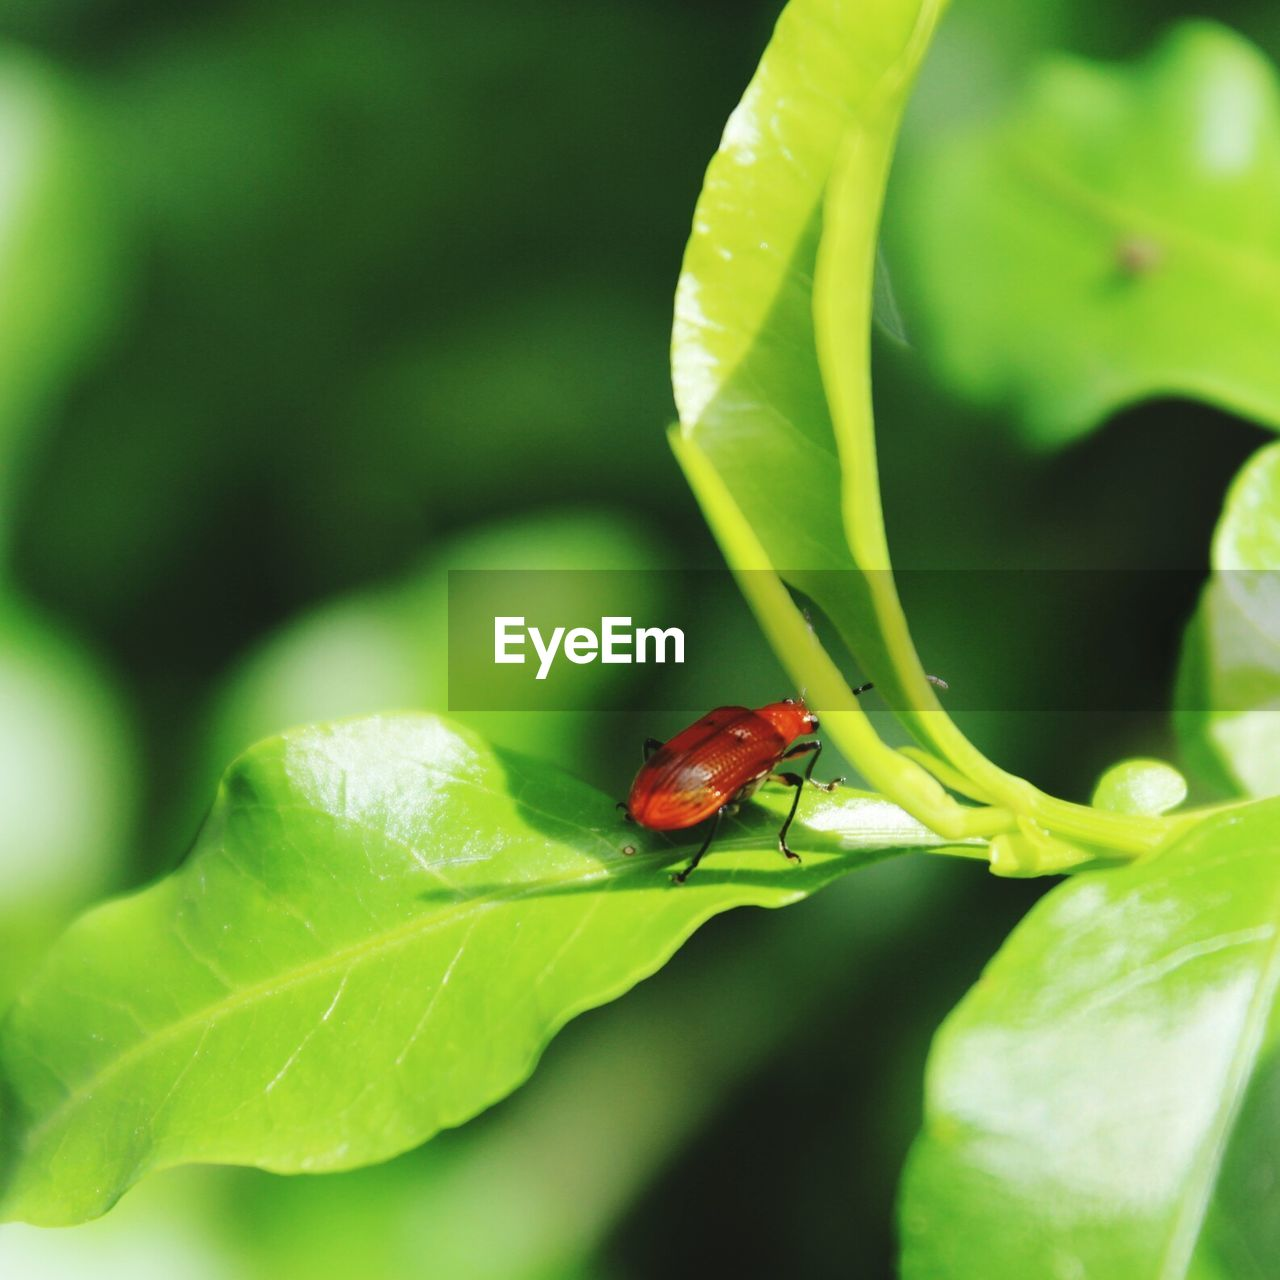 green color, insect, animal themes, plant part, leaf, animal, animals in the wild, invertebrate, animal wildlife, one animal, close-up, plant, no people, ladybug, nature, growth, beetle, red, day, selective focus, outdoors, small